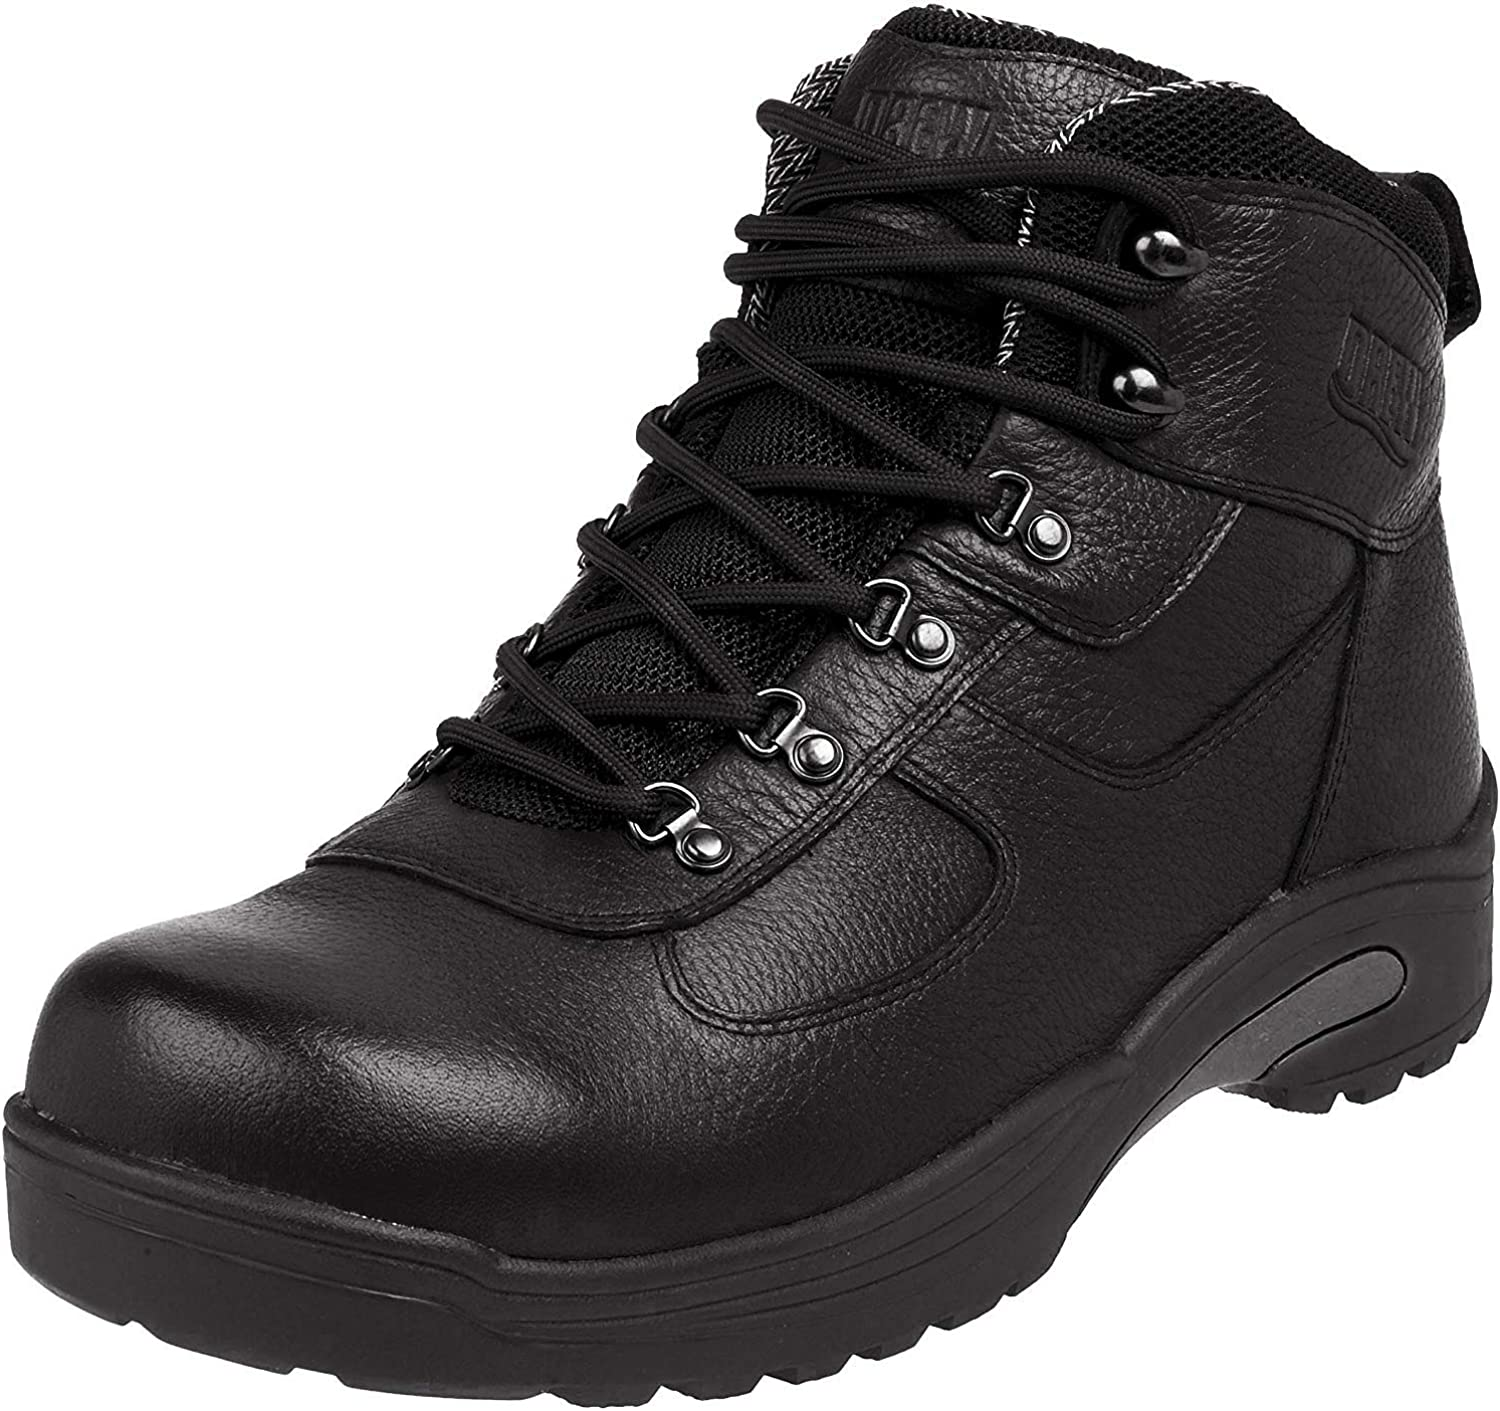 Drew Shoe Men s Rockford Boot,Black,9.5 6E US